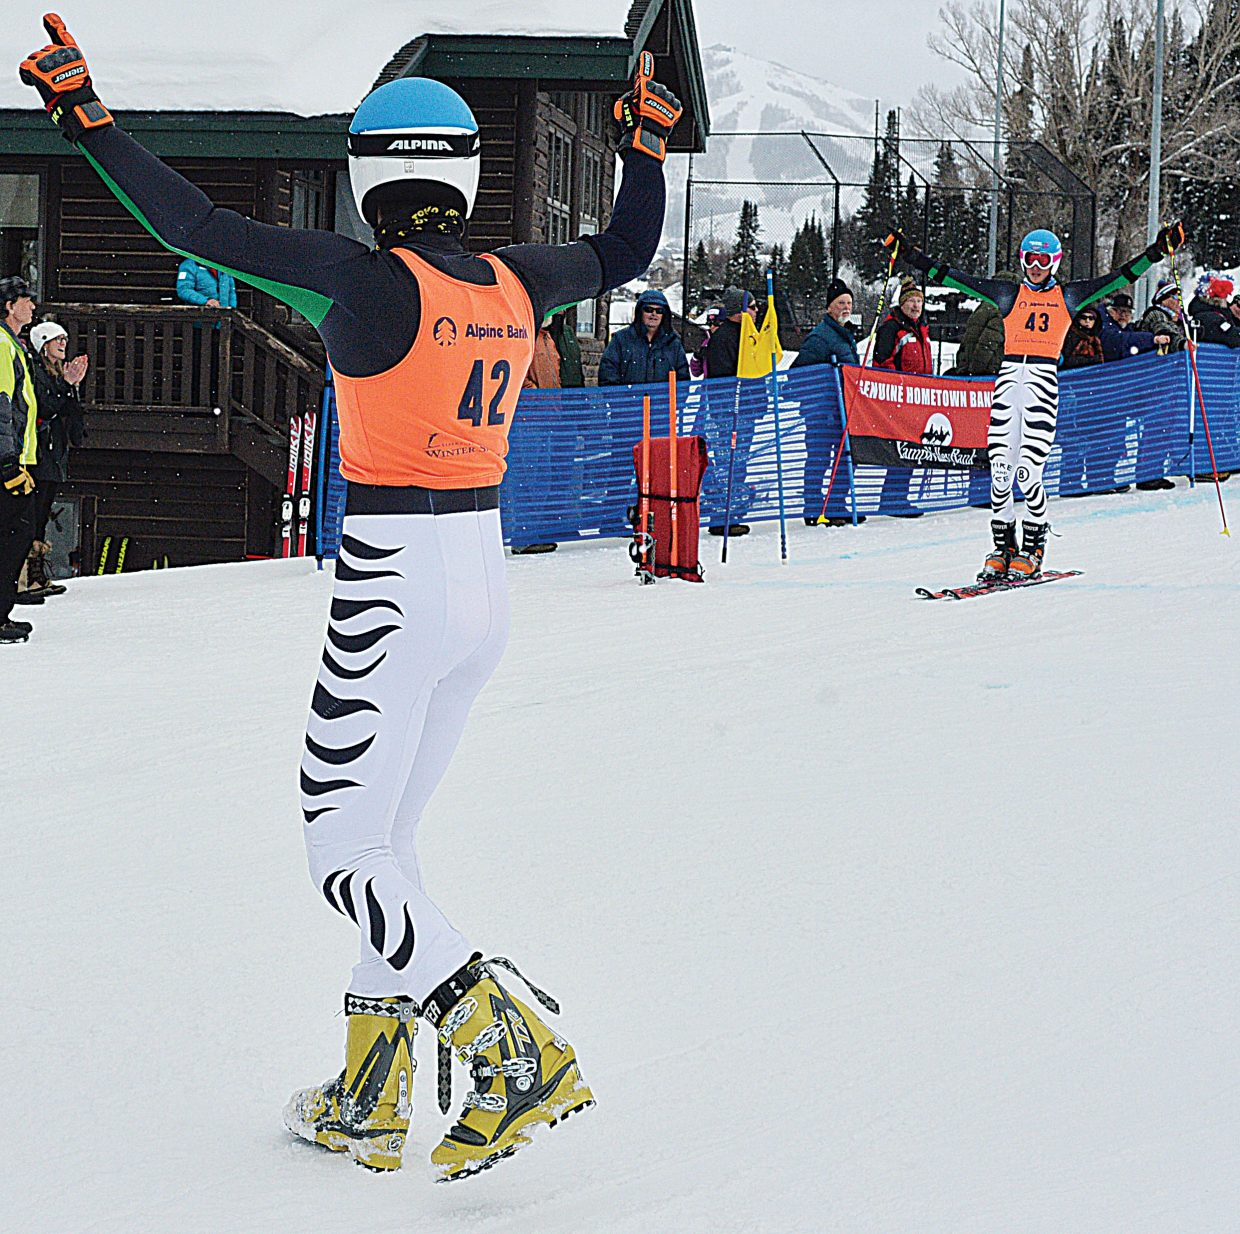 German skier Jonas Schmid celebrates as his teammate Tobias Mueller crosses the finish line of Wednesday's FIS Telemark World Championship team Event at Howelsen Hill. The Germans placed third after beating the Norwegians in the small finals. The World Championships will continue Thursday at 10 a.m. with the finals of the Parallel Sprint Classic.